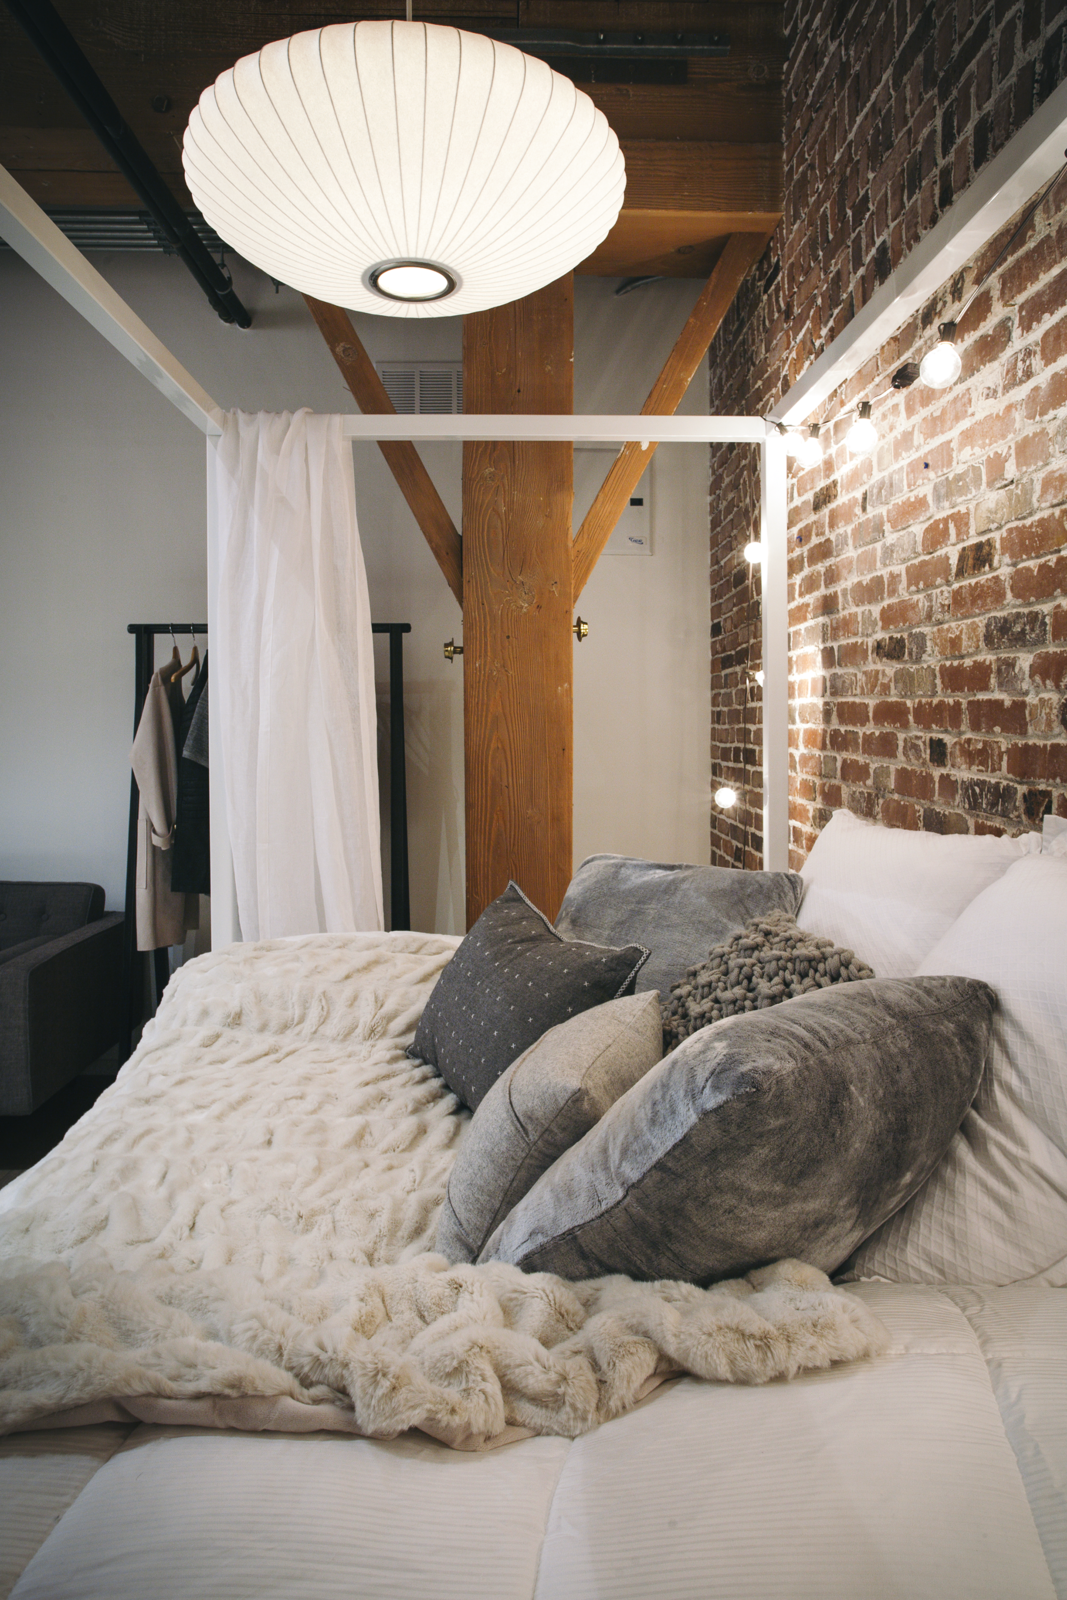 A George Nelson Saucer Lamp hangs over the bedroom.  Photo 10 of 10 in Step Inside One Couple's Game-Changing Live/Work Loft